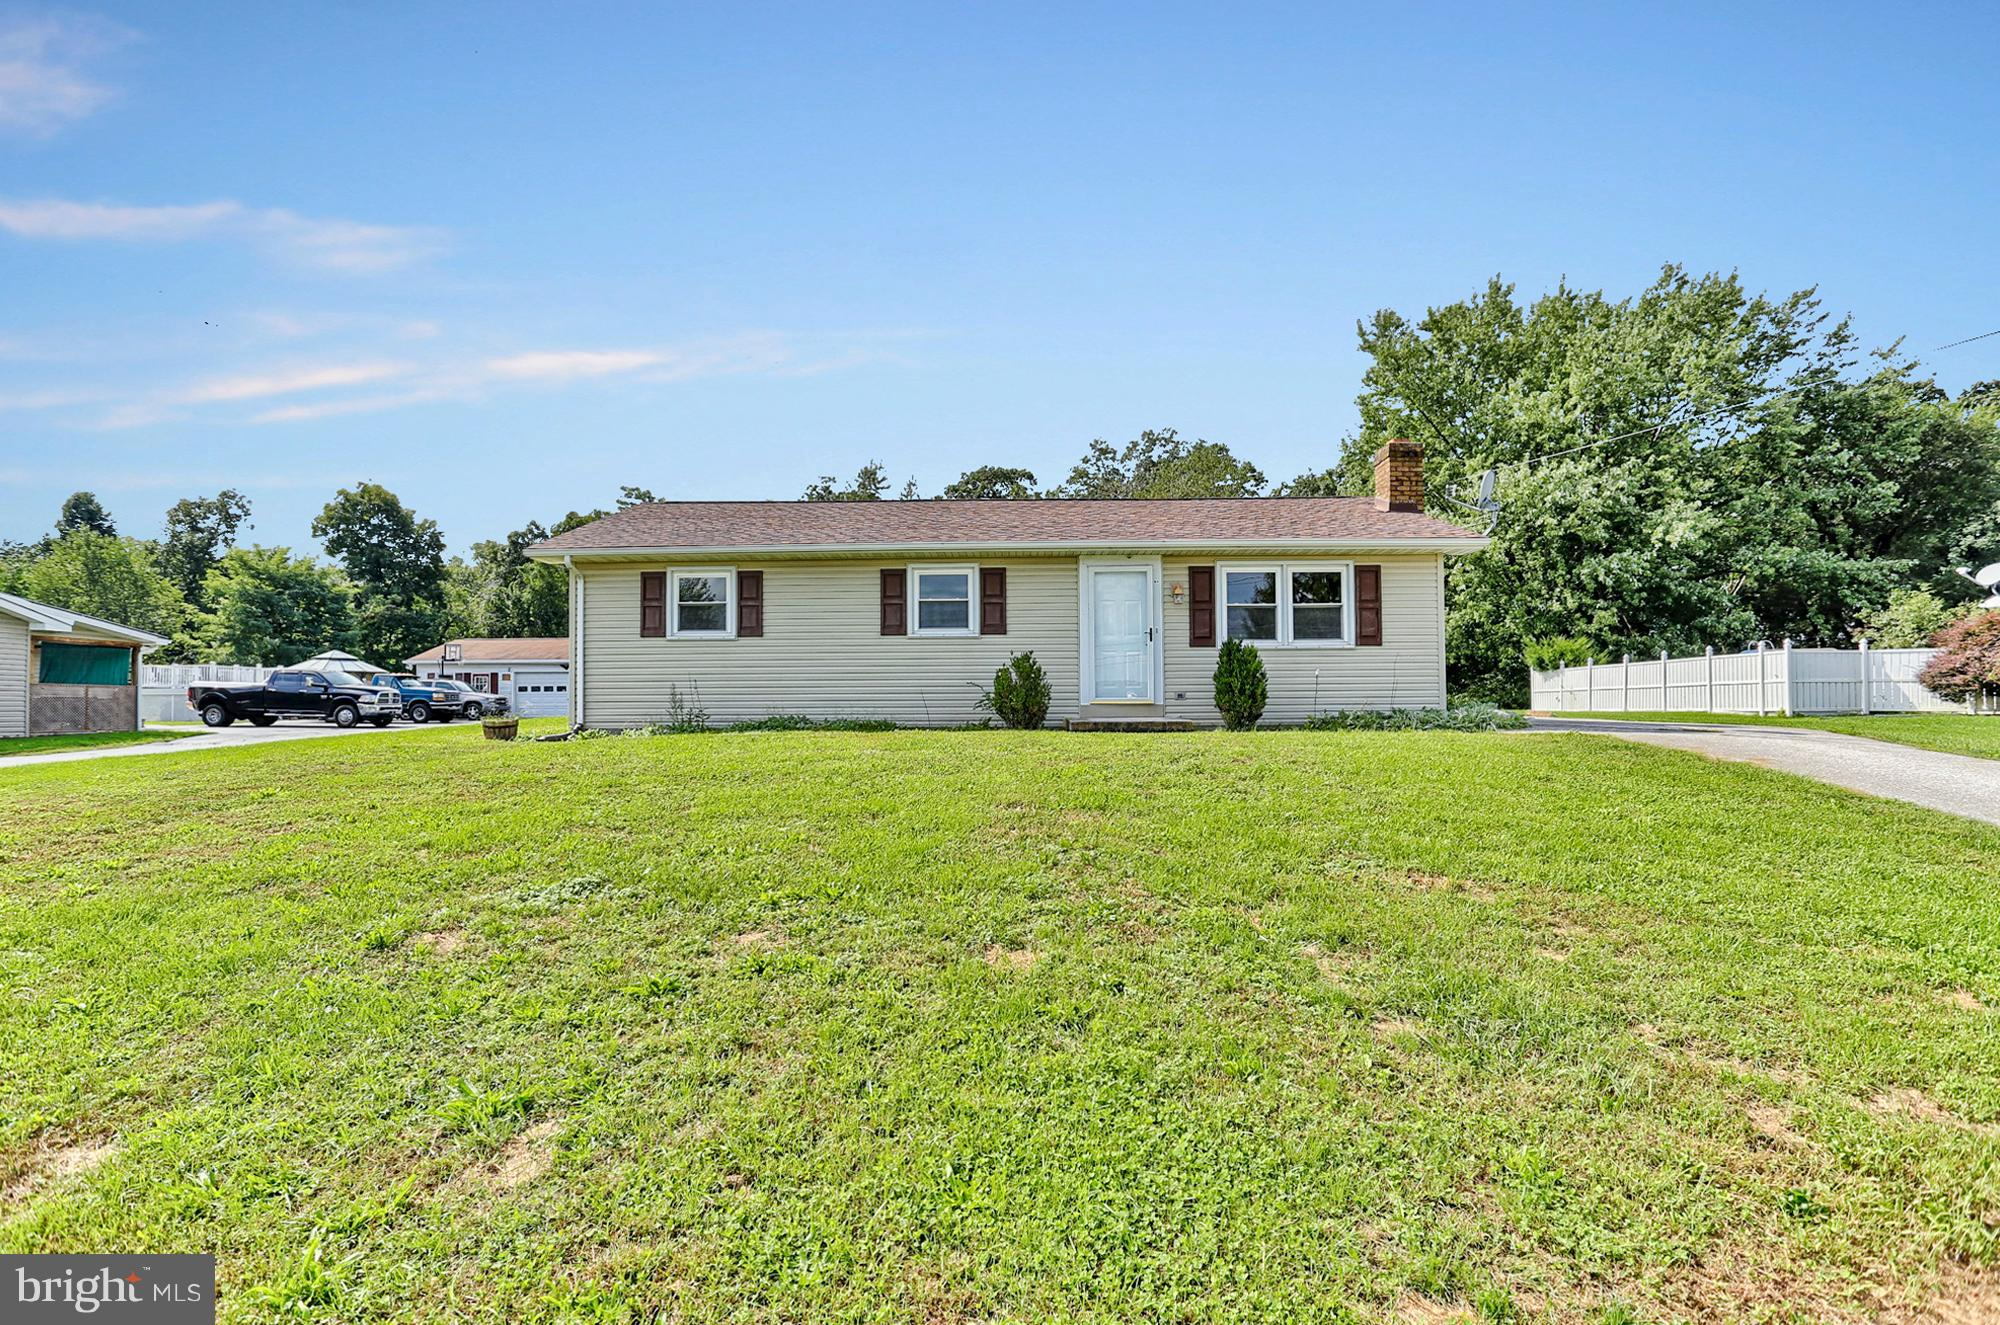 4999 BLUE HILL ROAD, GLENVILLE, PA 17329